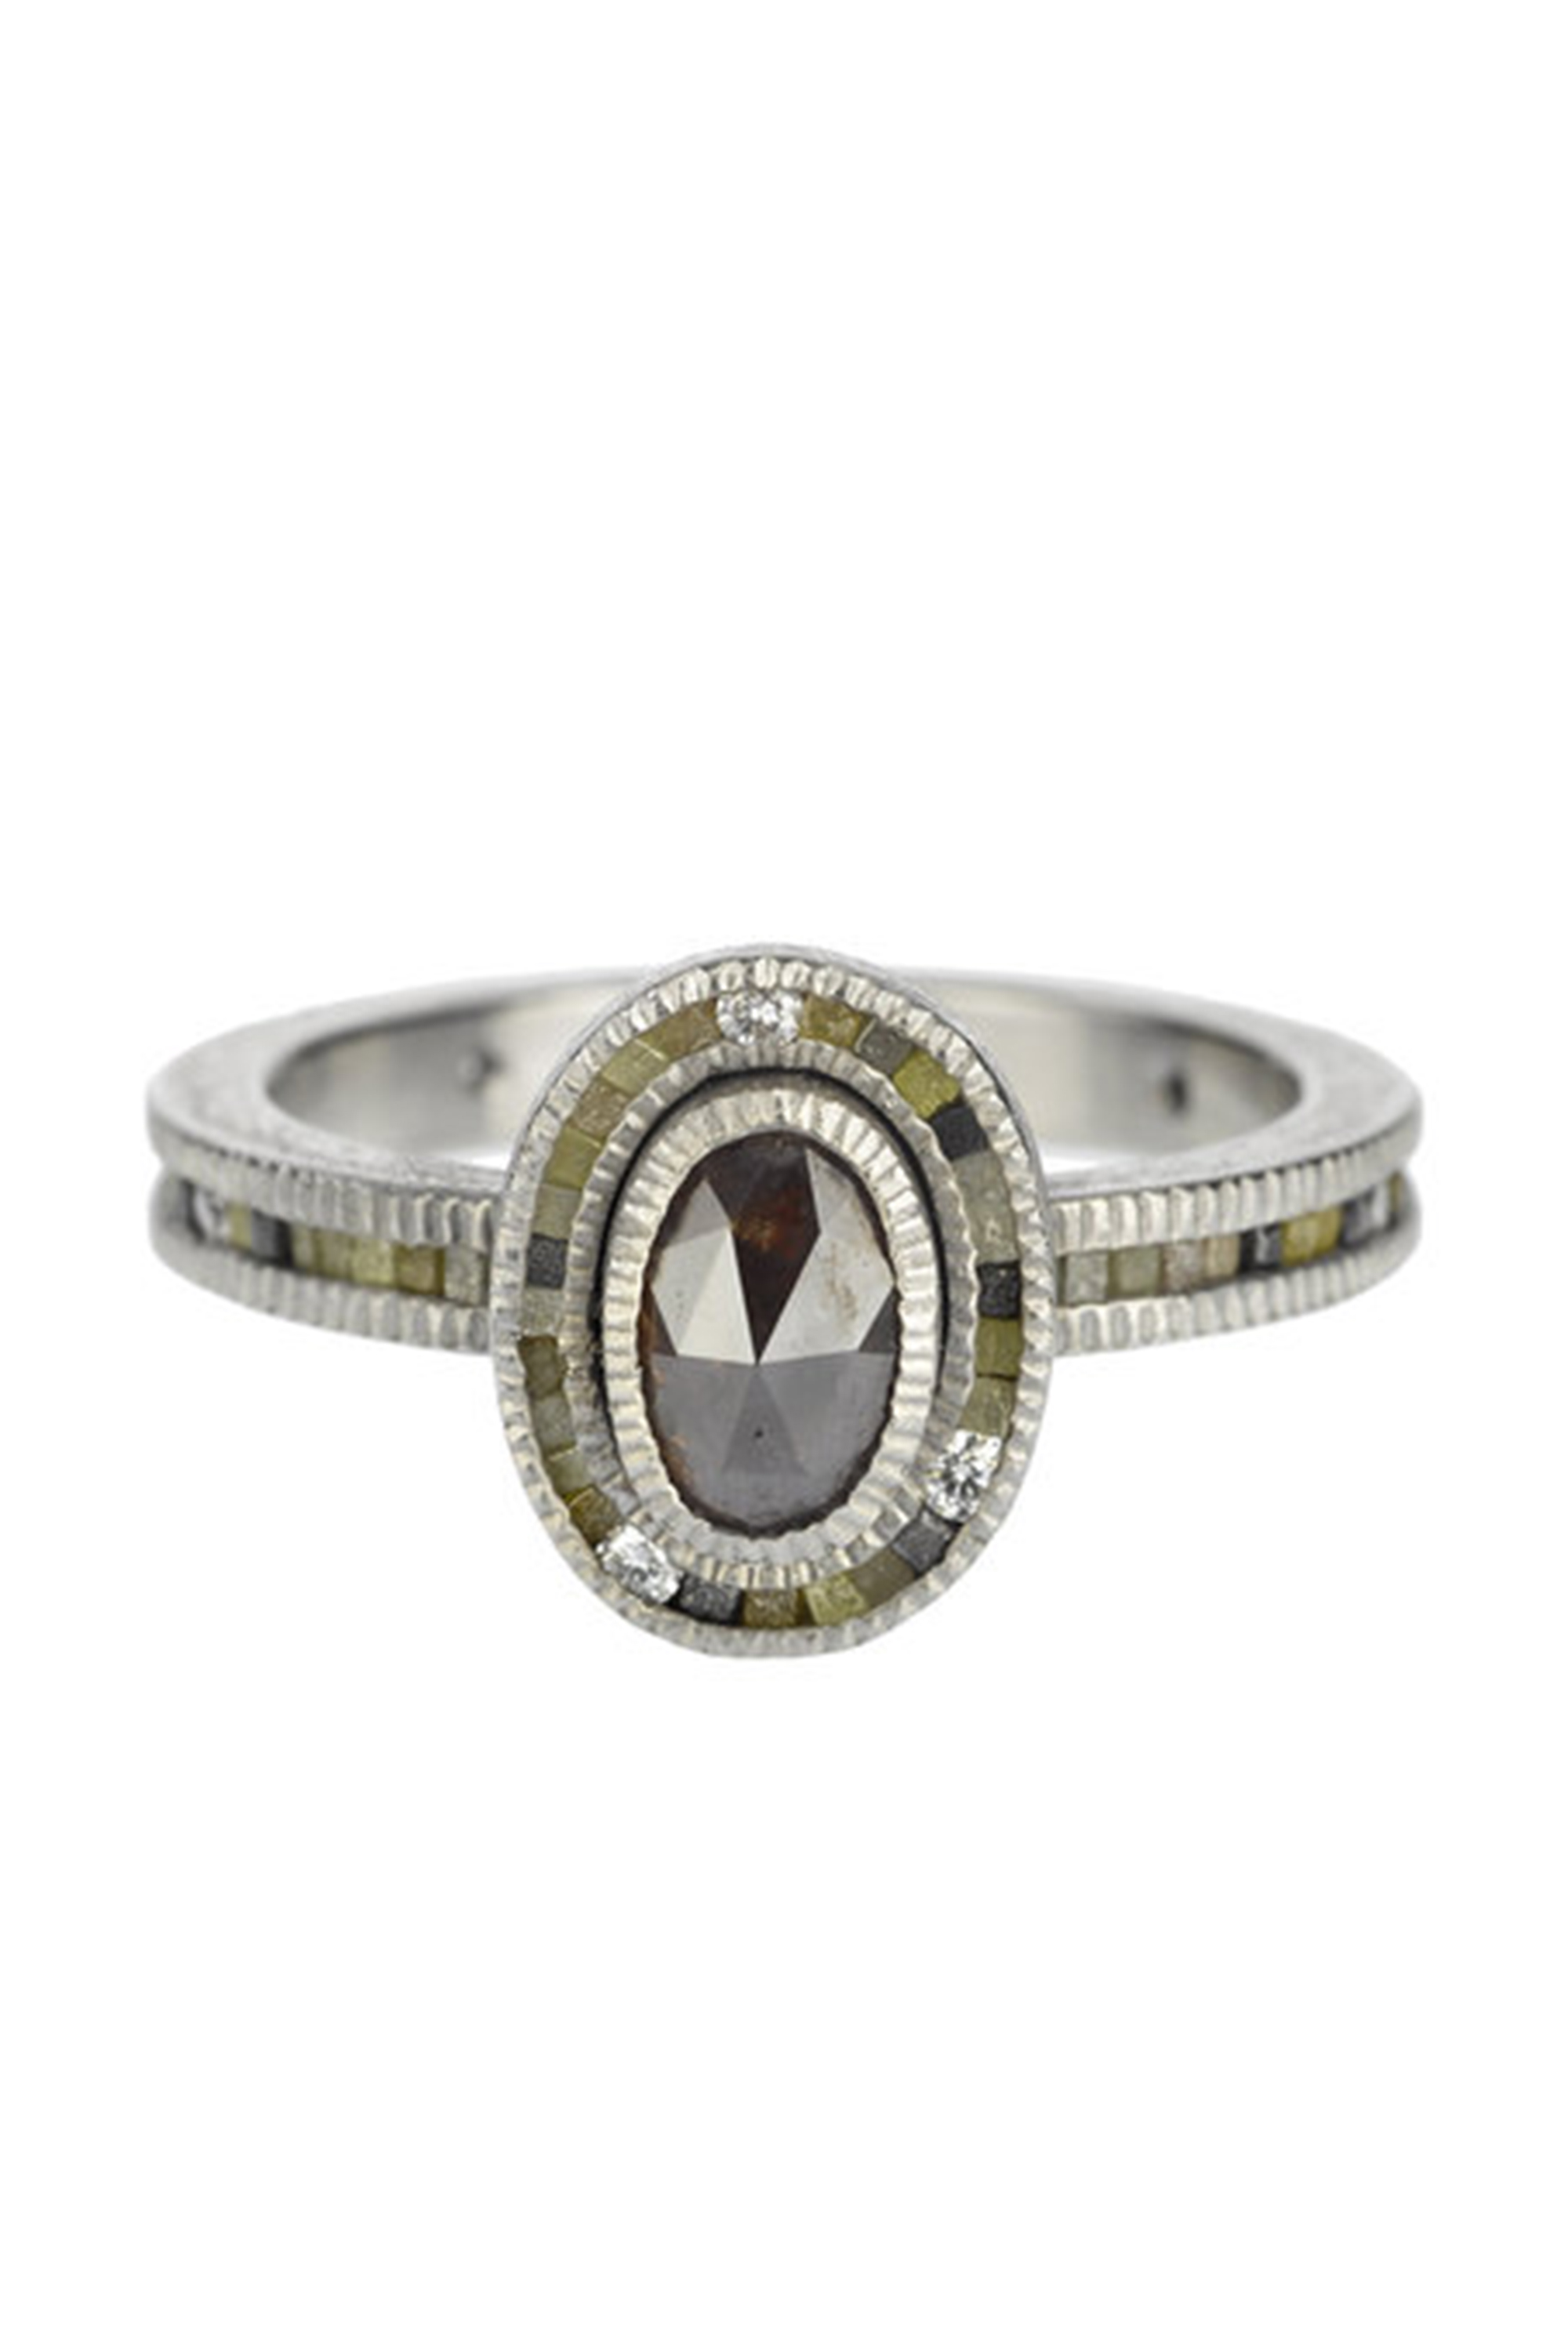 27 Unique Engagement Rings - Beautiful Non Diamond and Unusual Engagement  Rings